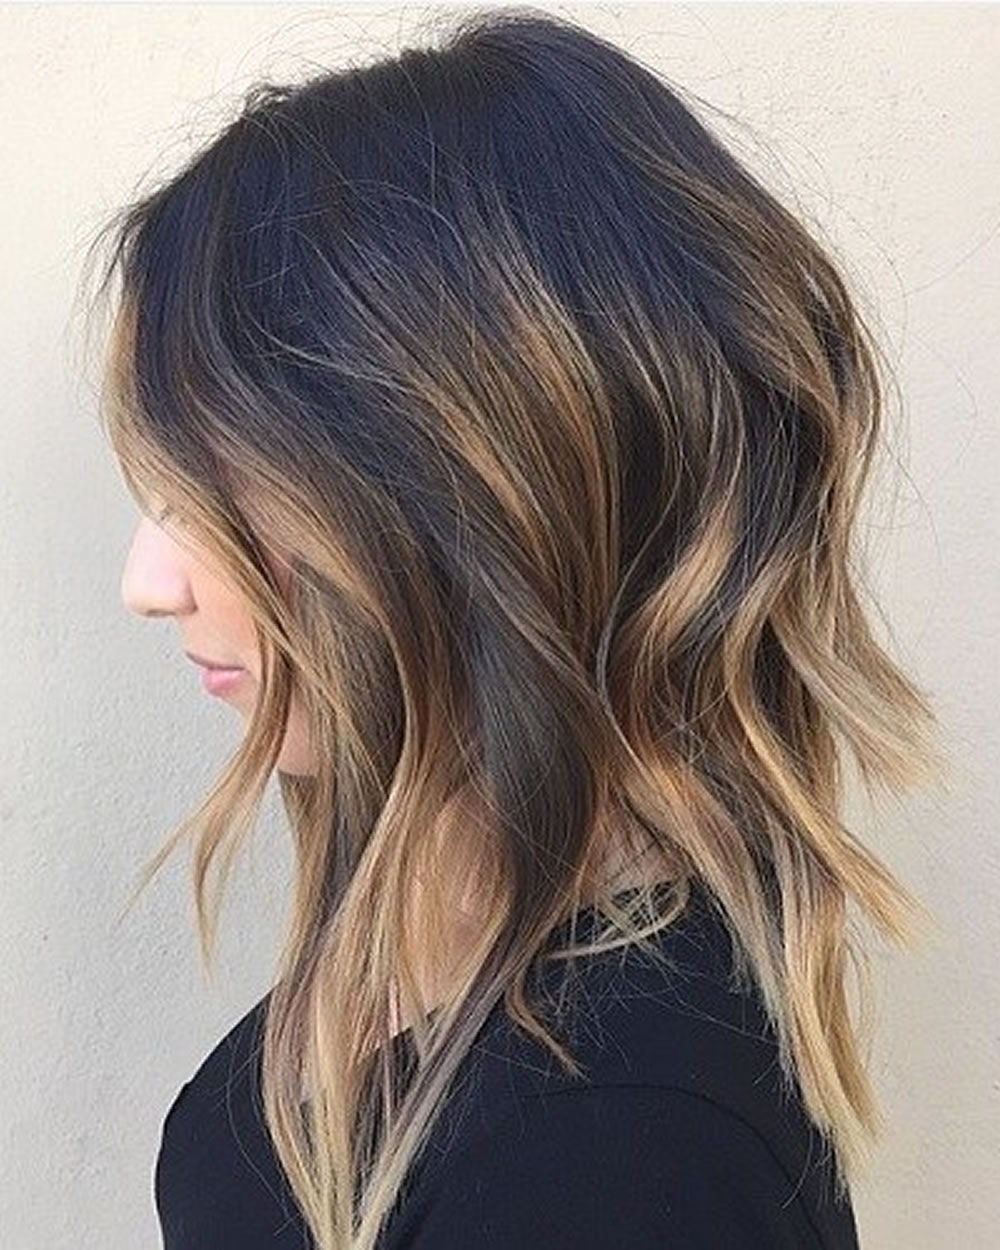 Asymmetrical Short Haircuts With Balayage Highlights 2018 – 2019 Intended For Best And Newest Feathered Pixie Haircuts With Balayage Highlights (Gallery 3 of 15)